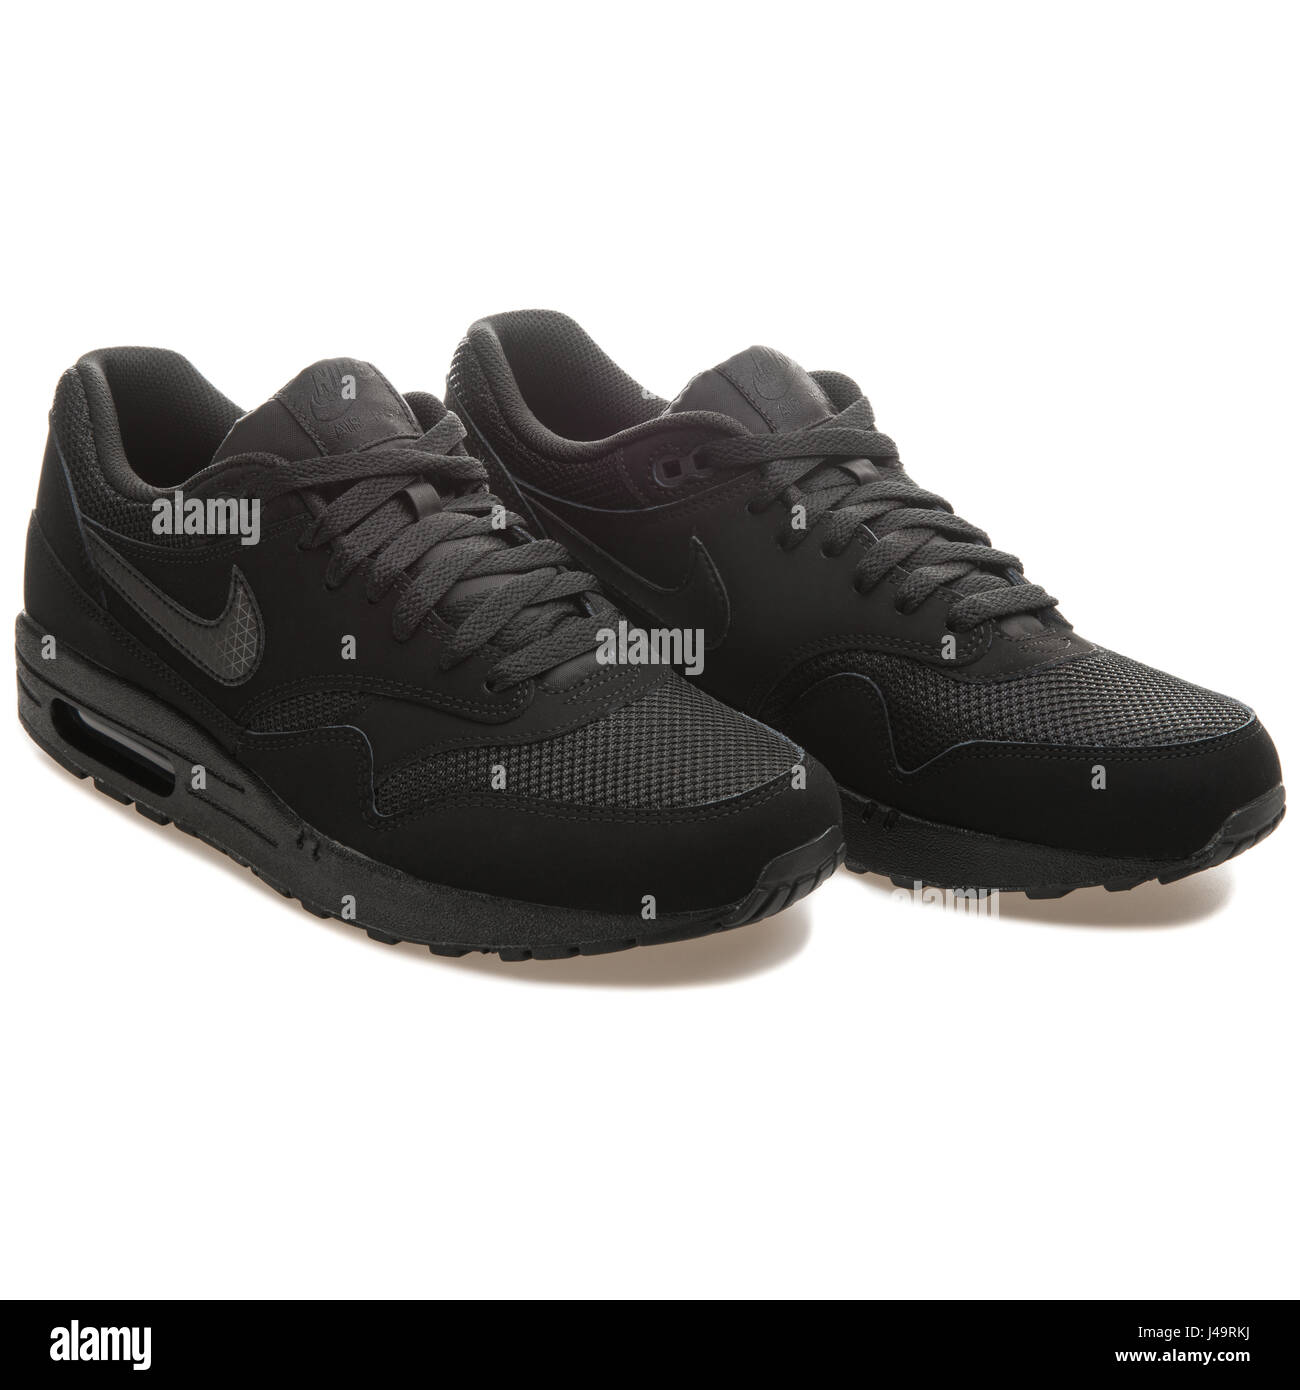 0dcf11f9 Nike Air Max 1 Essential Black - 537383-025 Stock Photo: 140357718 ...